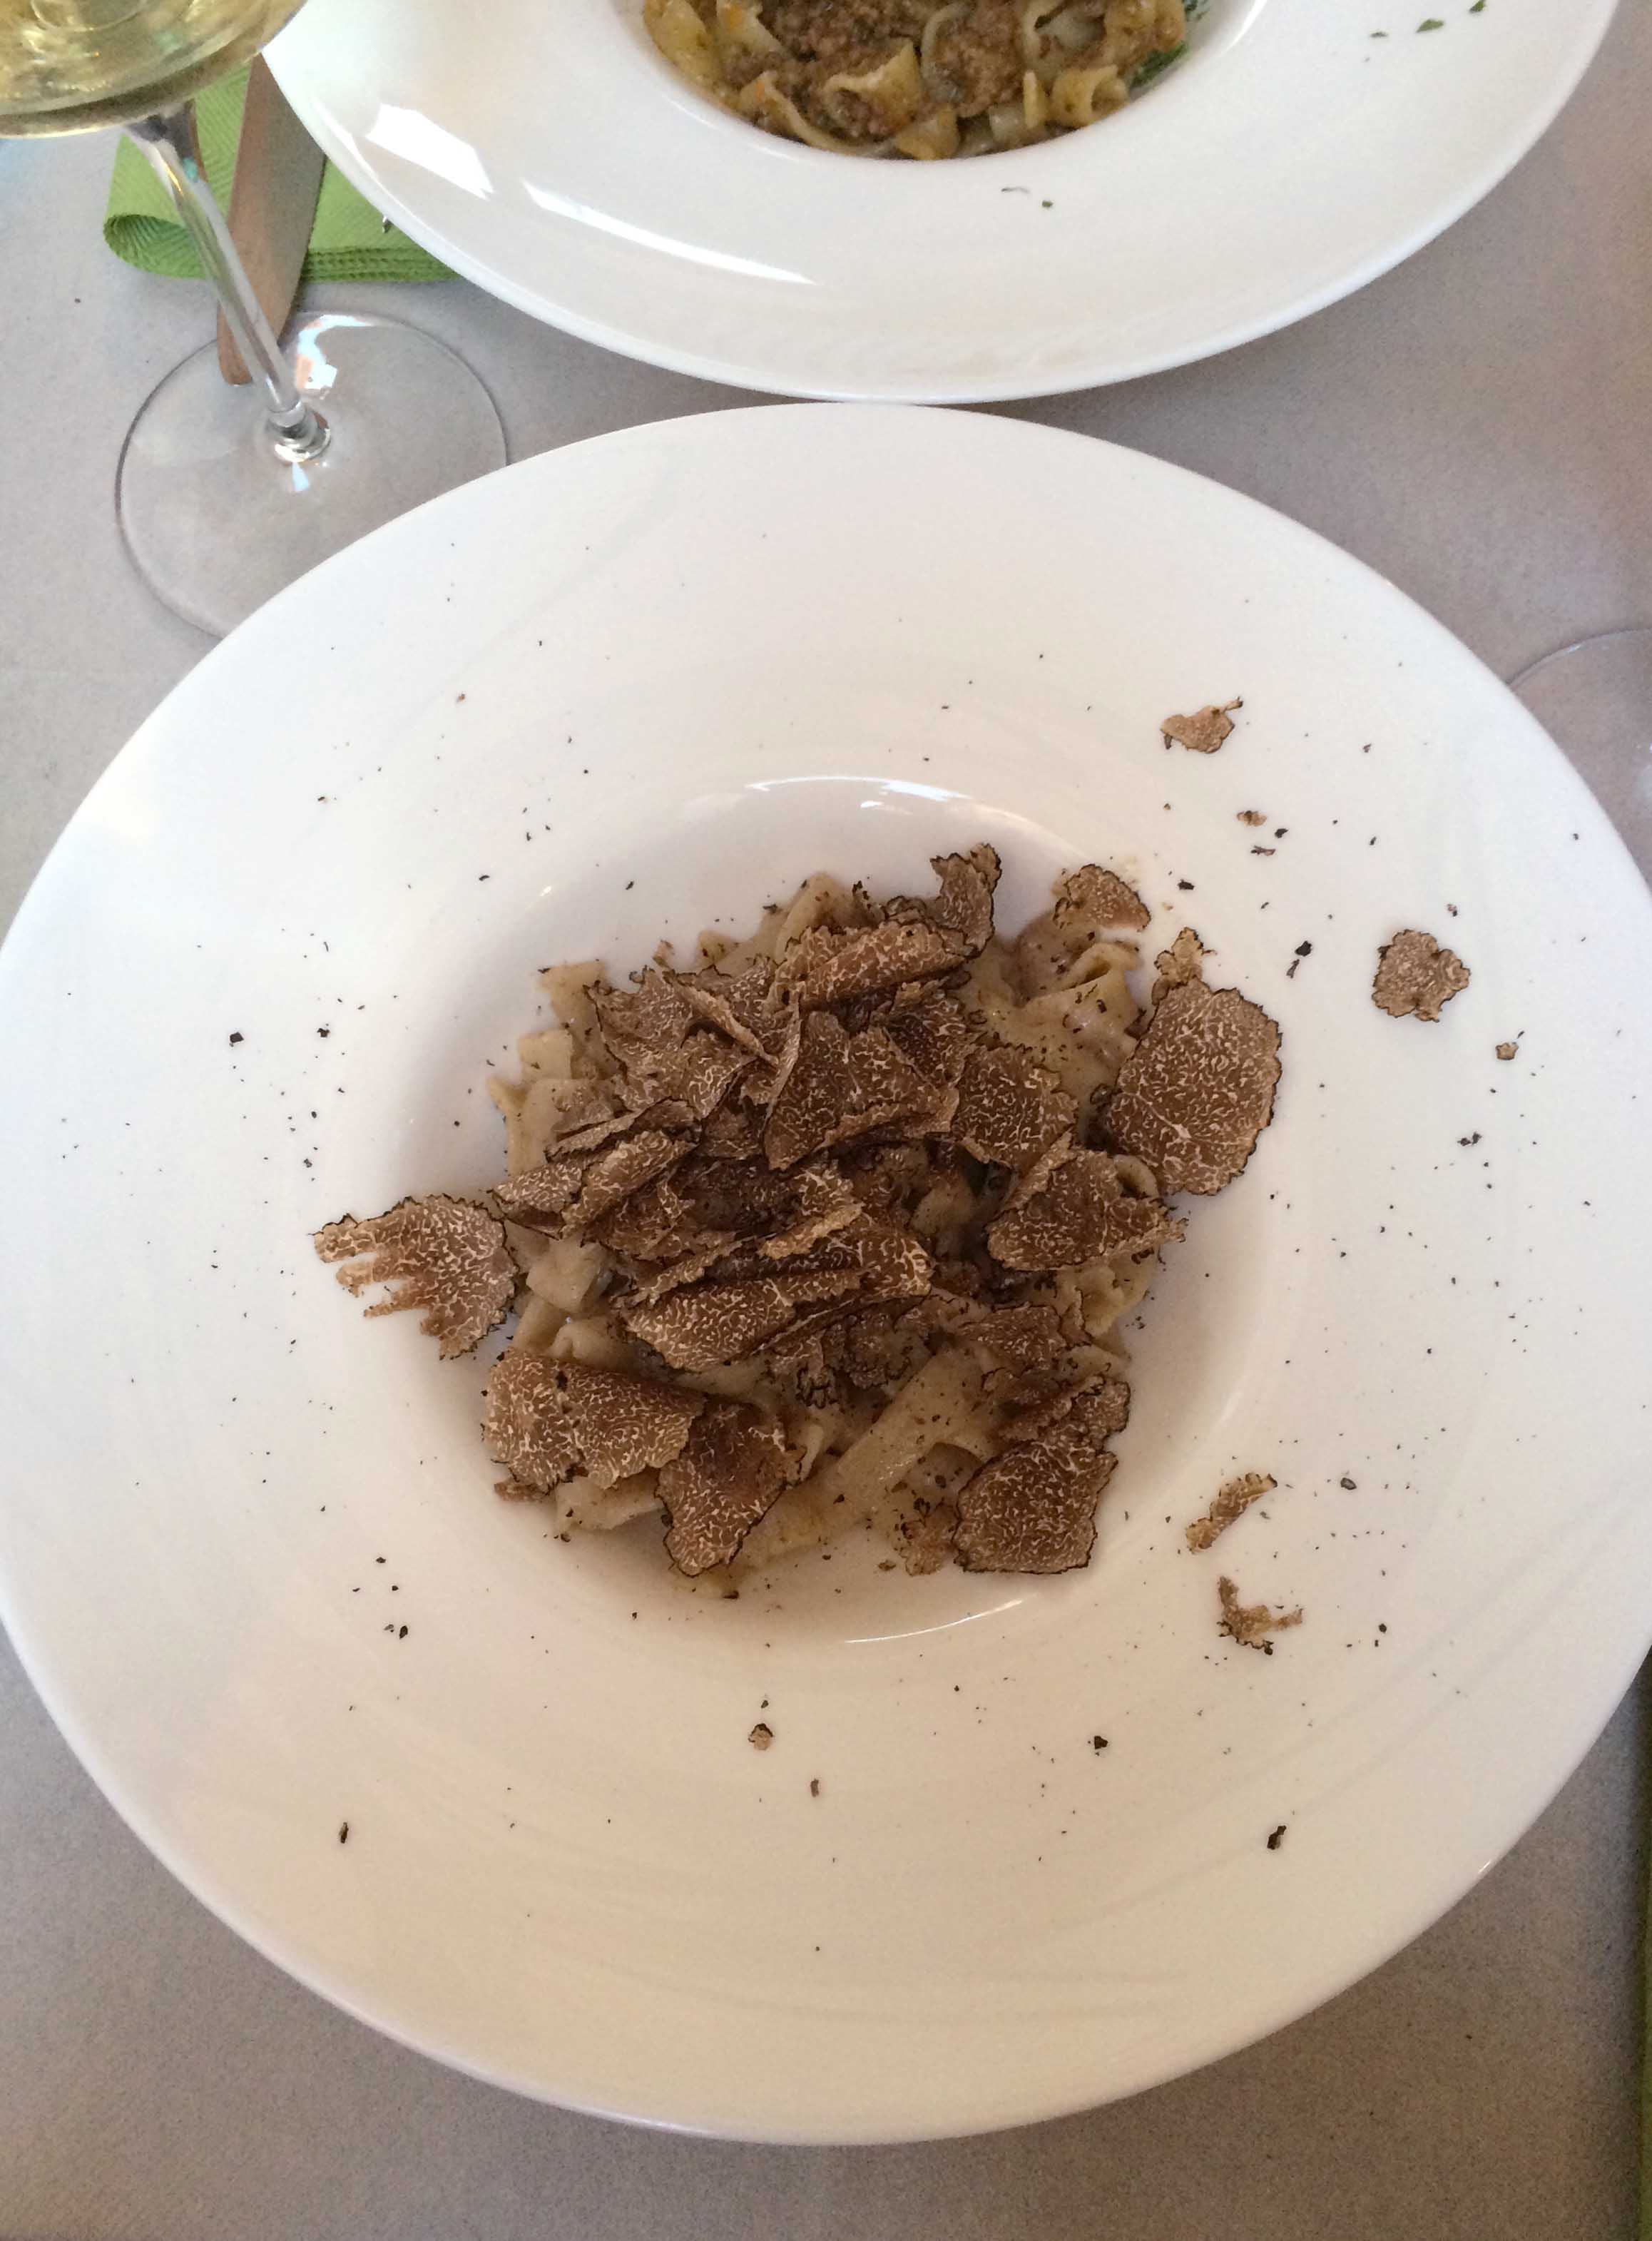 The land of truffles did not disappoint.